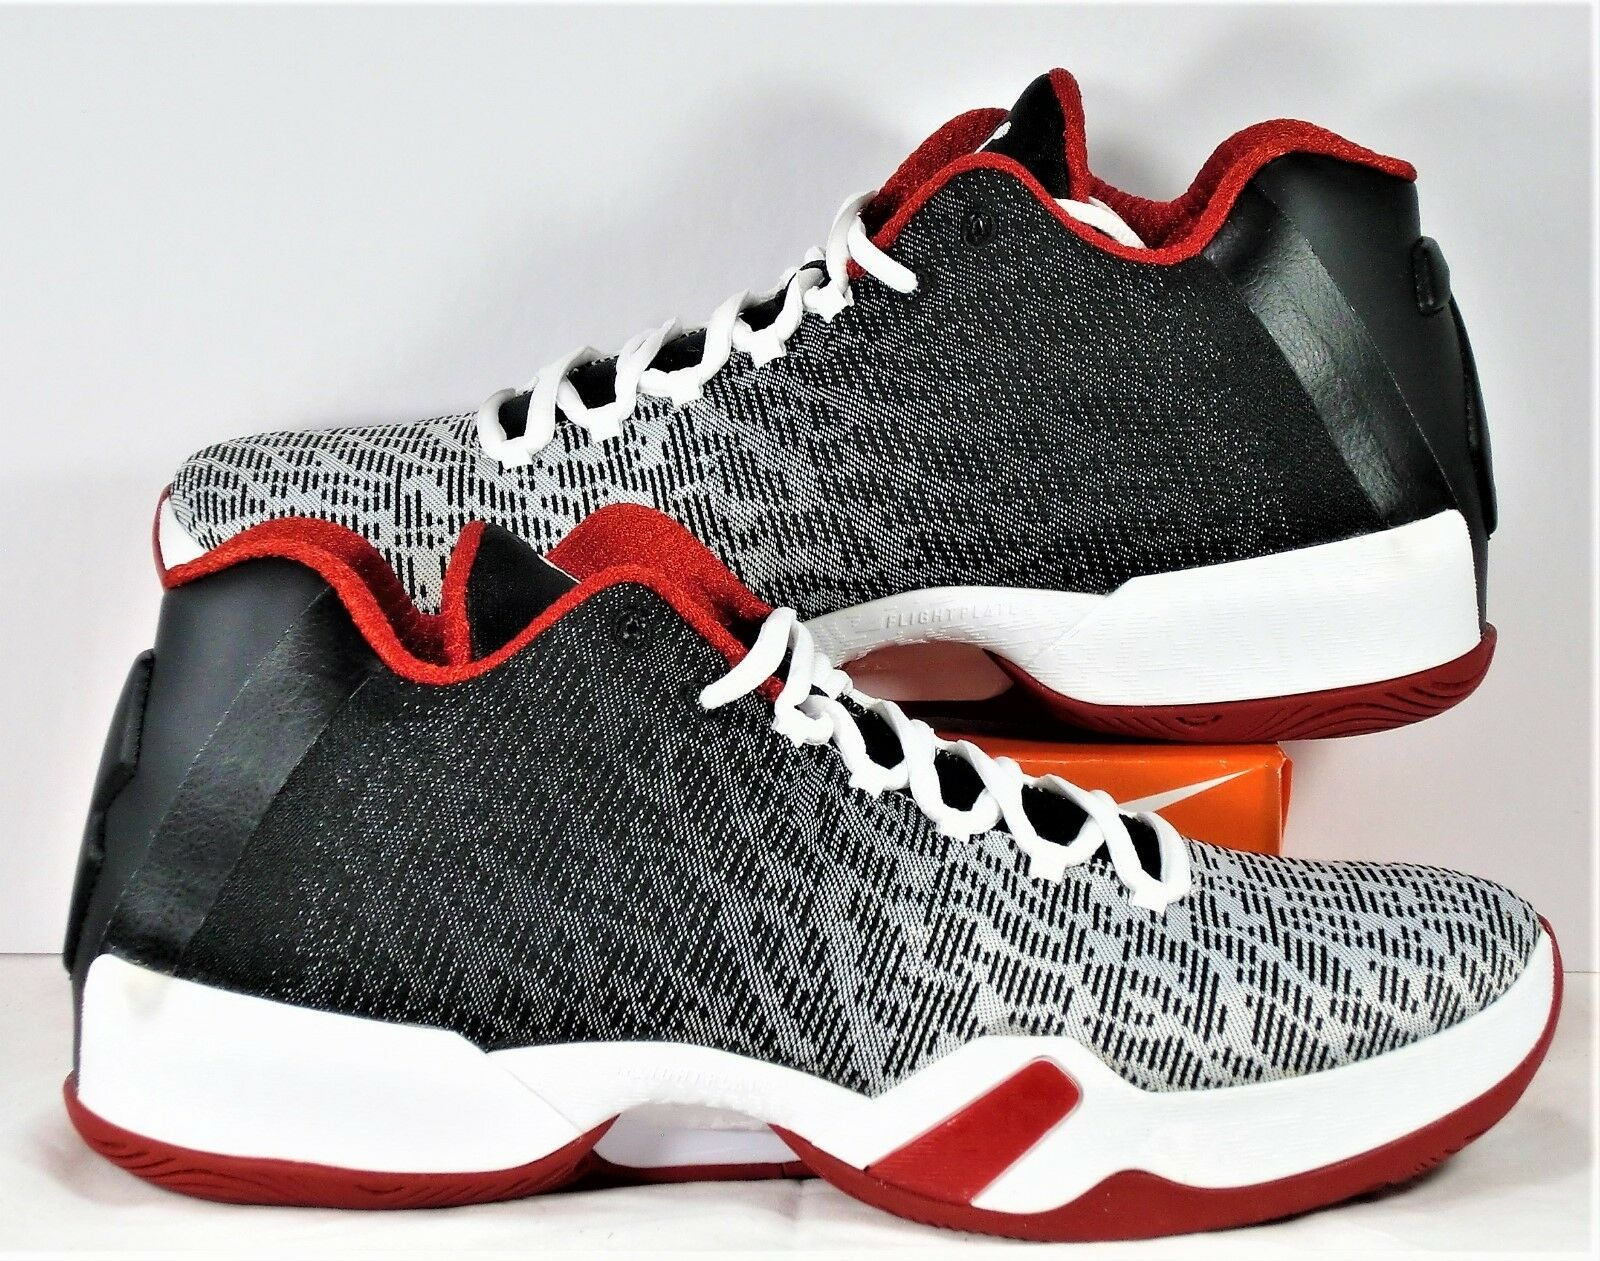 official photos f94a7 25e5d Nike Air Jordan XX9 Low White Black   Gym Red Red Red Chicago Bulls Sz 10